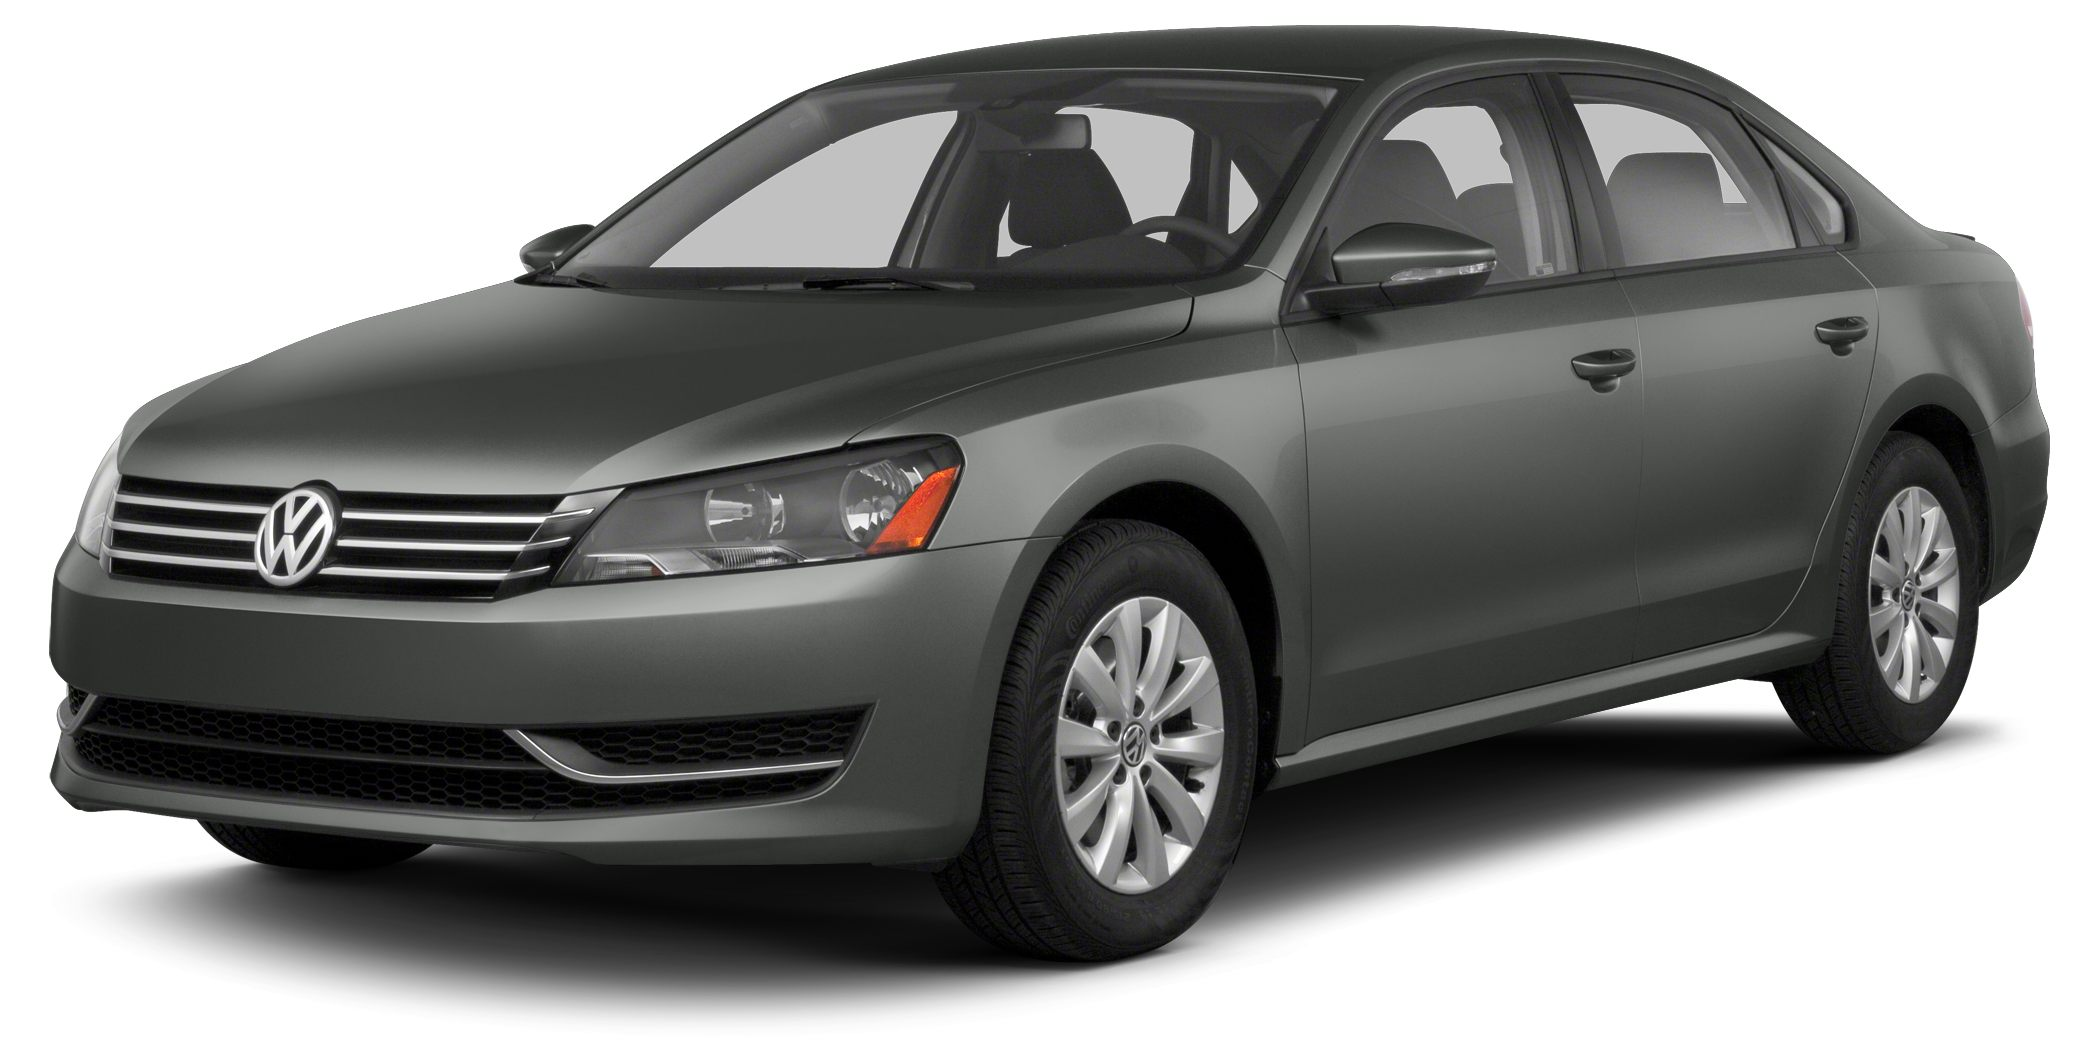 2013 Volkswagen Passat 20 TDI SE  4 NEW TIRES  NEW BRAKES and 1 OWNER Moonrock wP